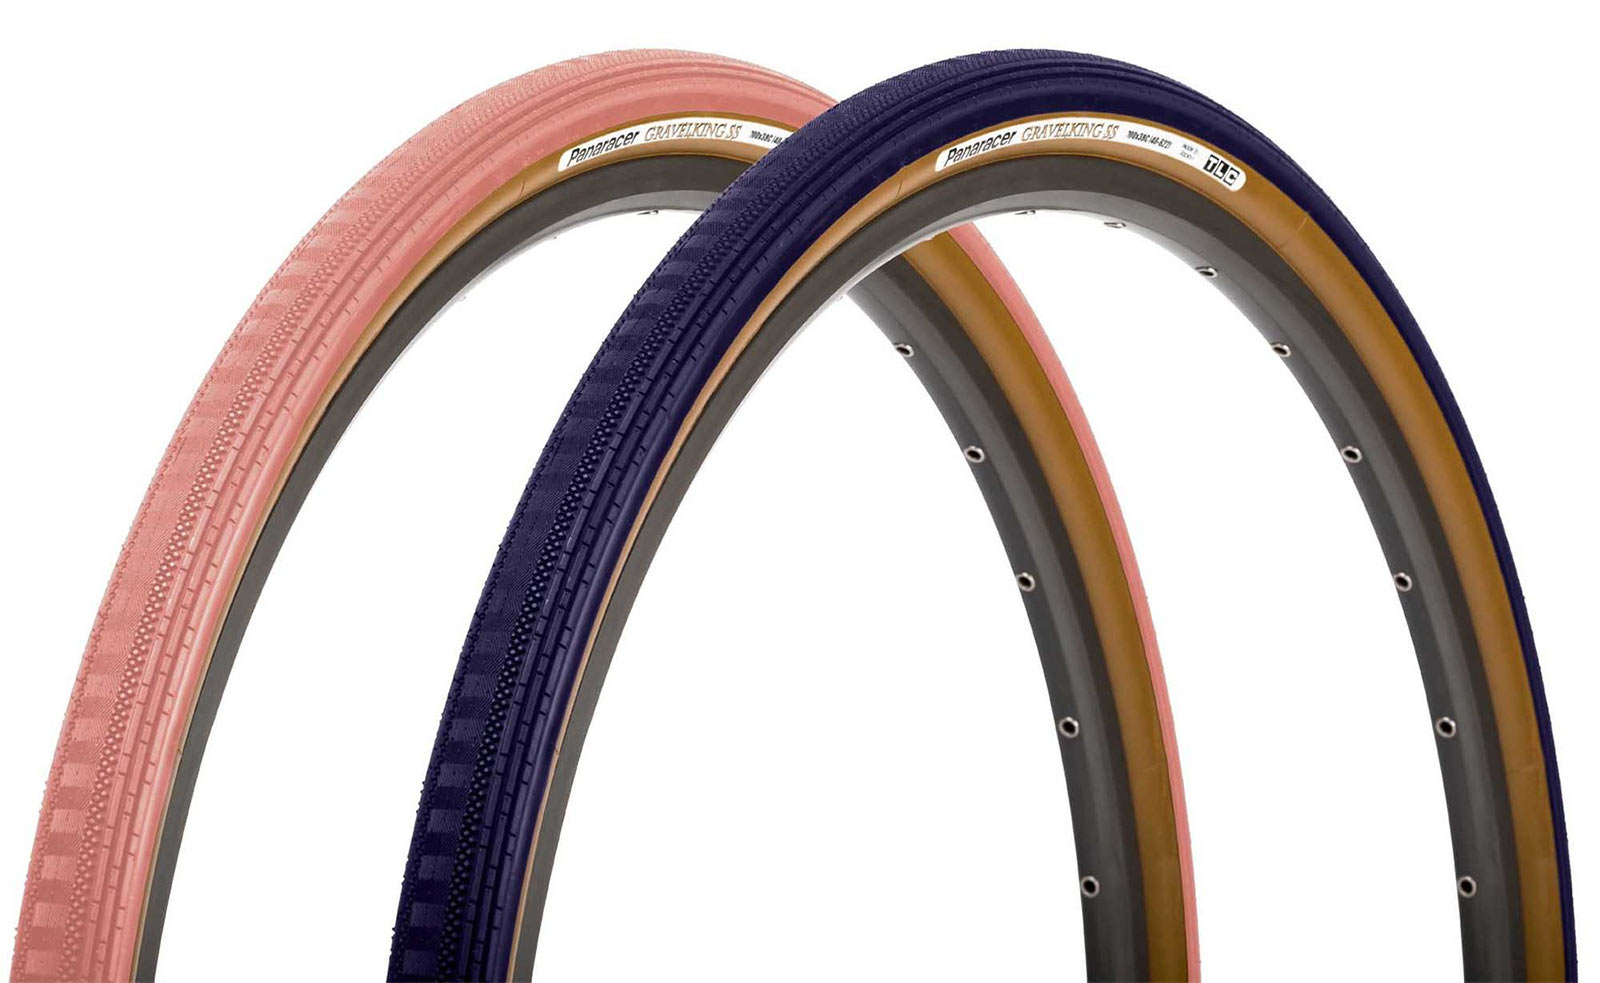 2021 limited edition pink and blue colors for panaracer gravelking SS semi slick gravel bike tires